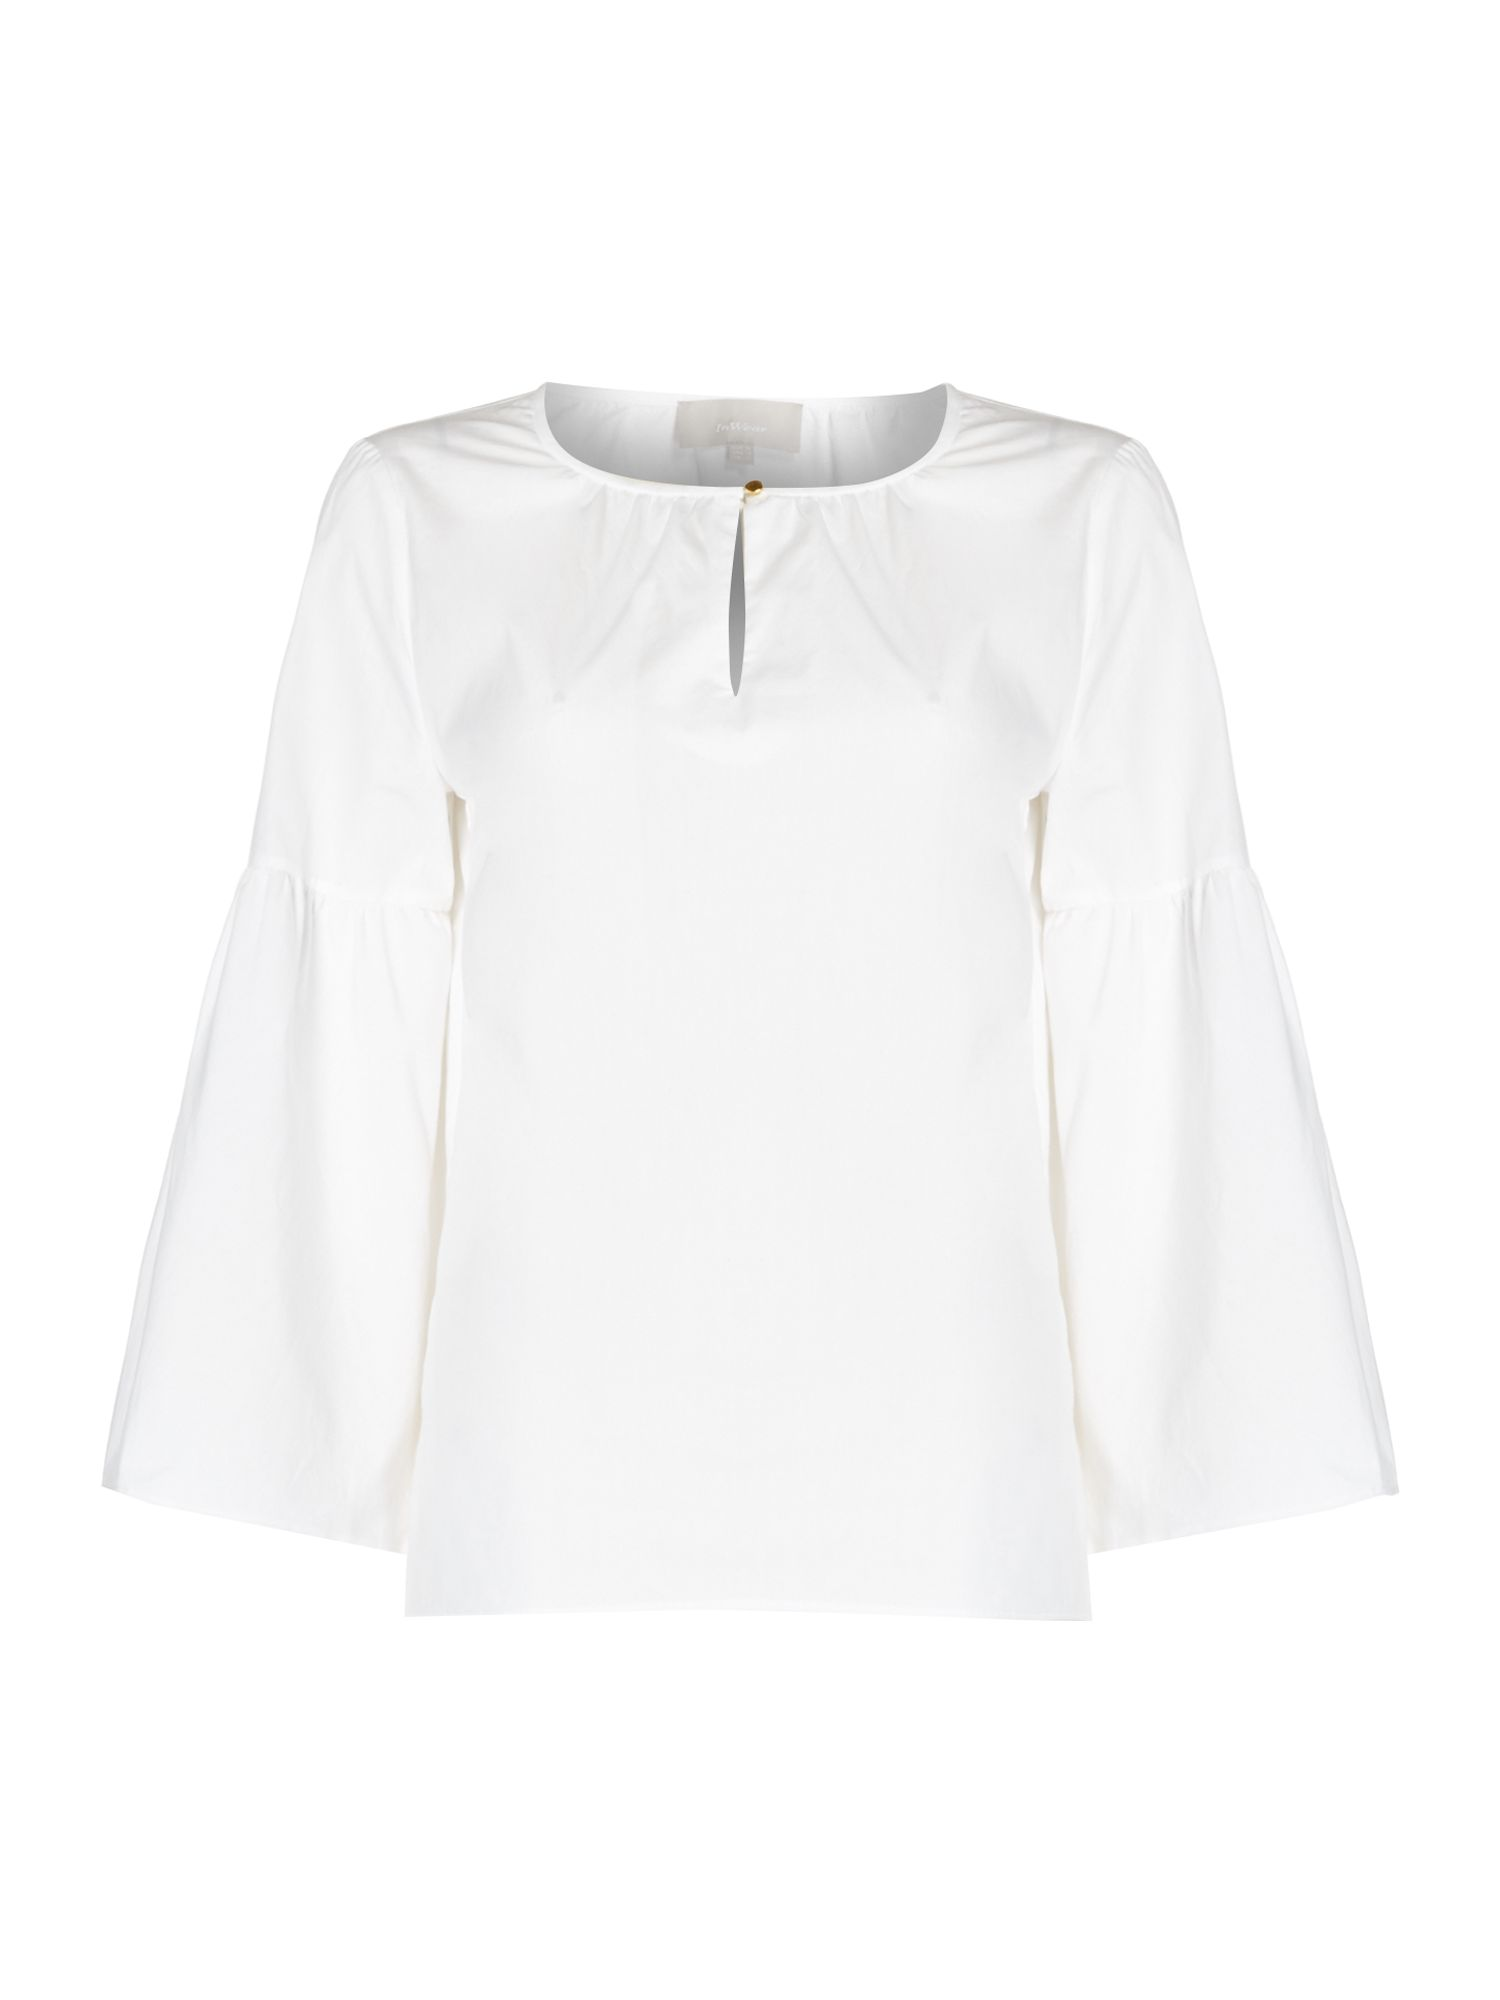 In Wear Flared sleeve button detail shirt, White